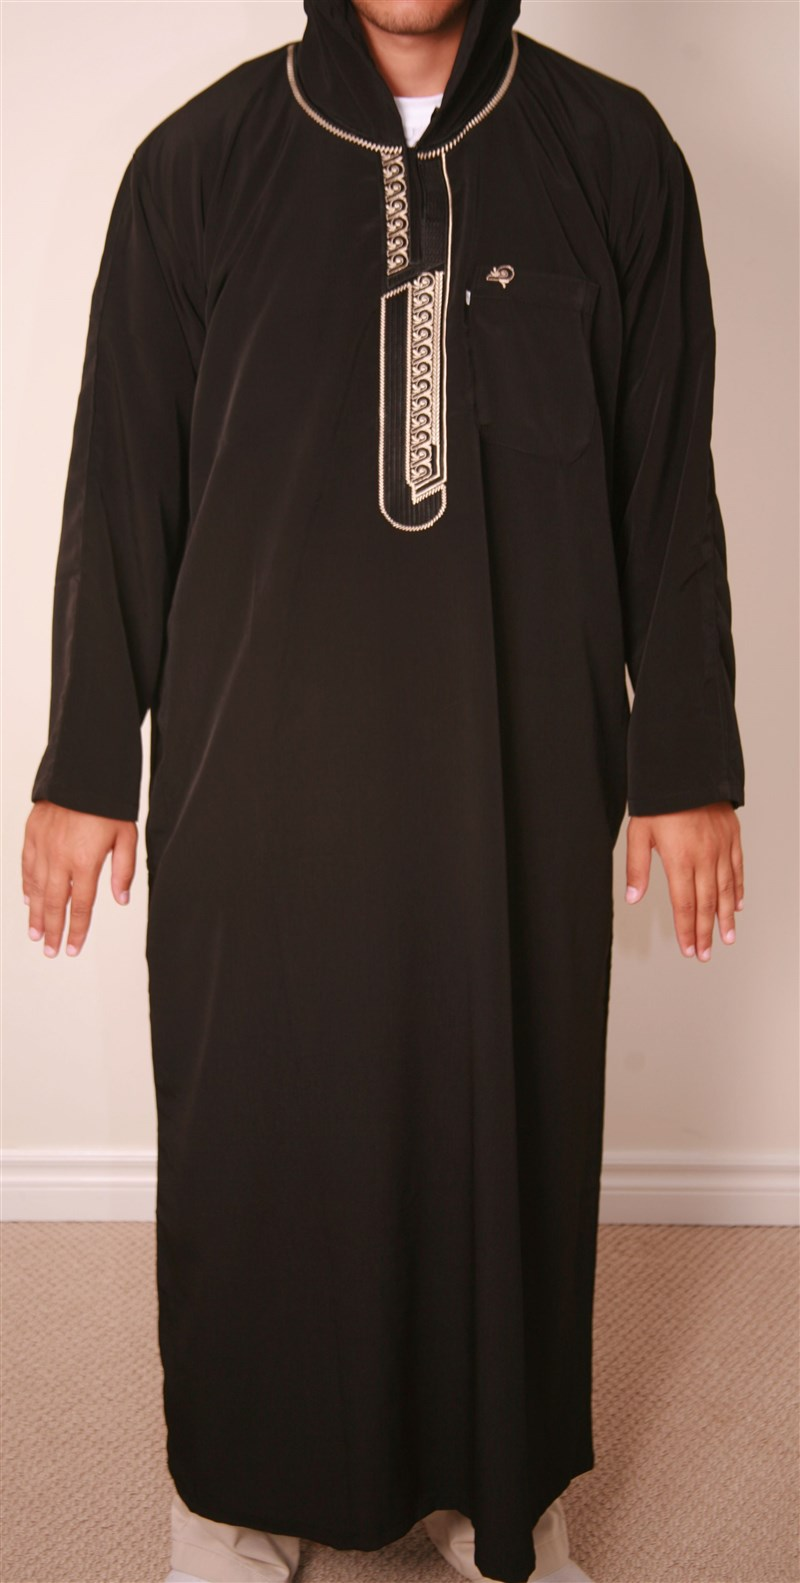 Moroccon Embroidered Jubba Thobe The Sunnah Solutions